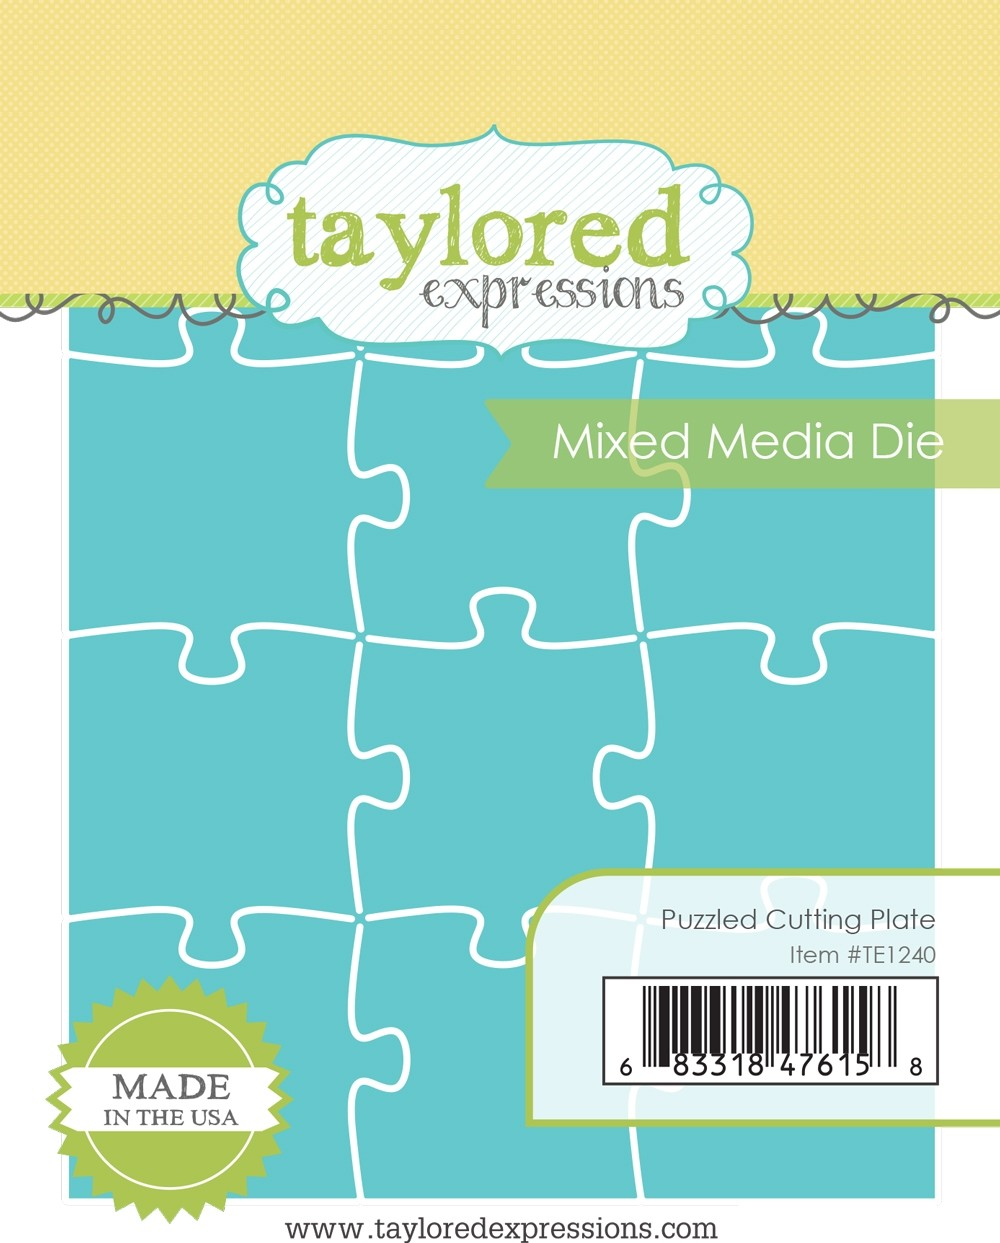 Taylored Expression - Puzzled Cutting Plate - Mixed Media Die